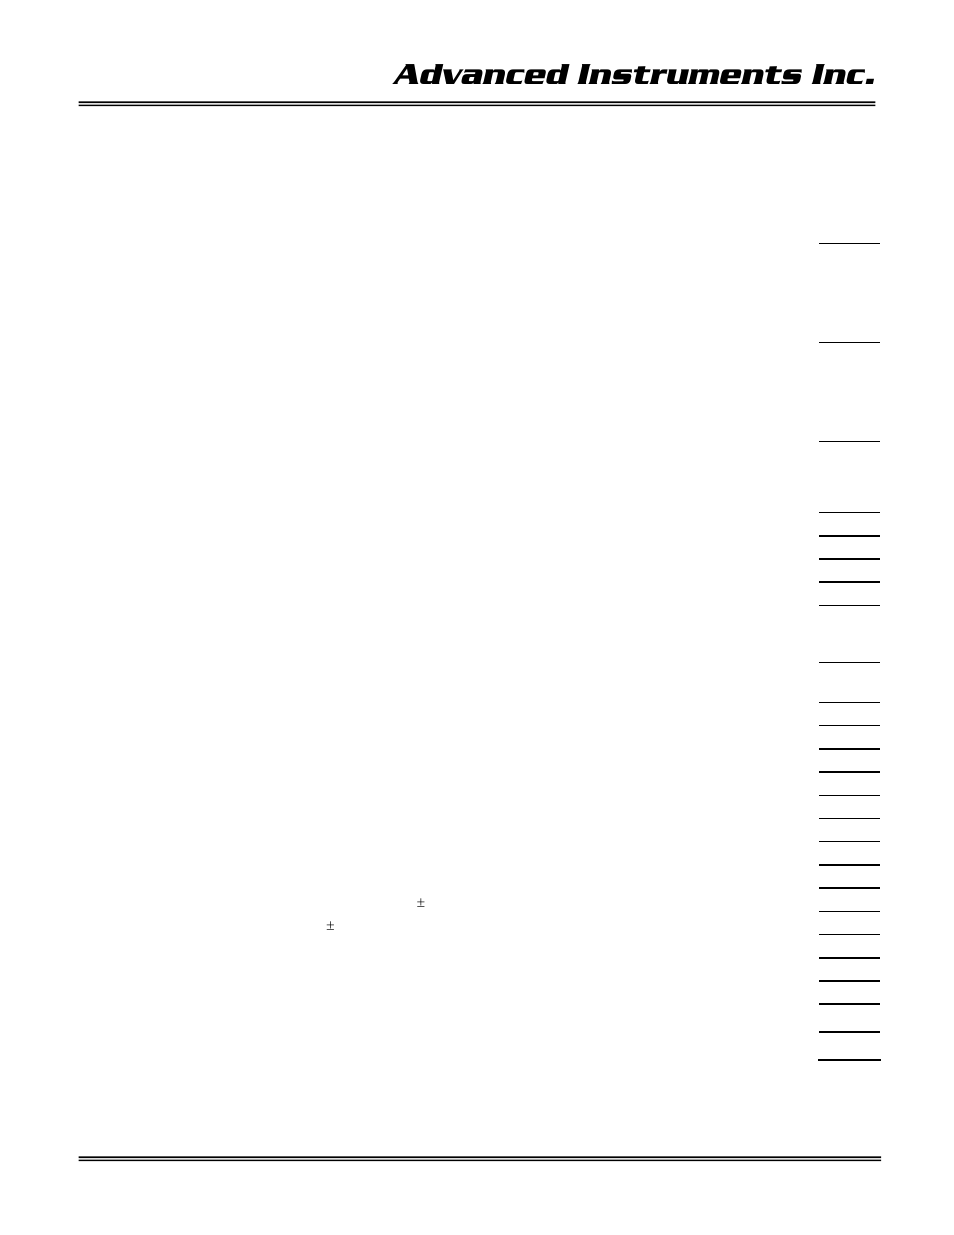 2 quality control certification, Advanced instruments inc